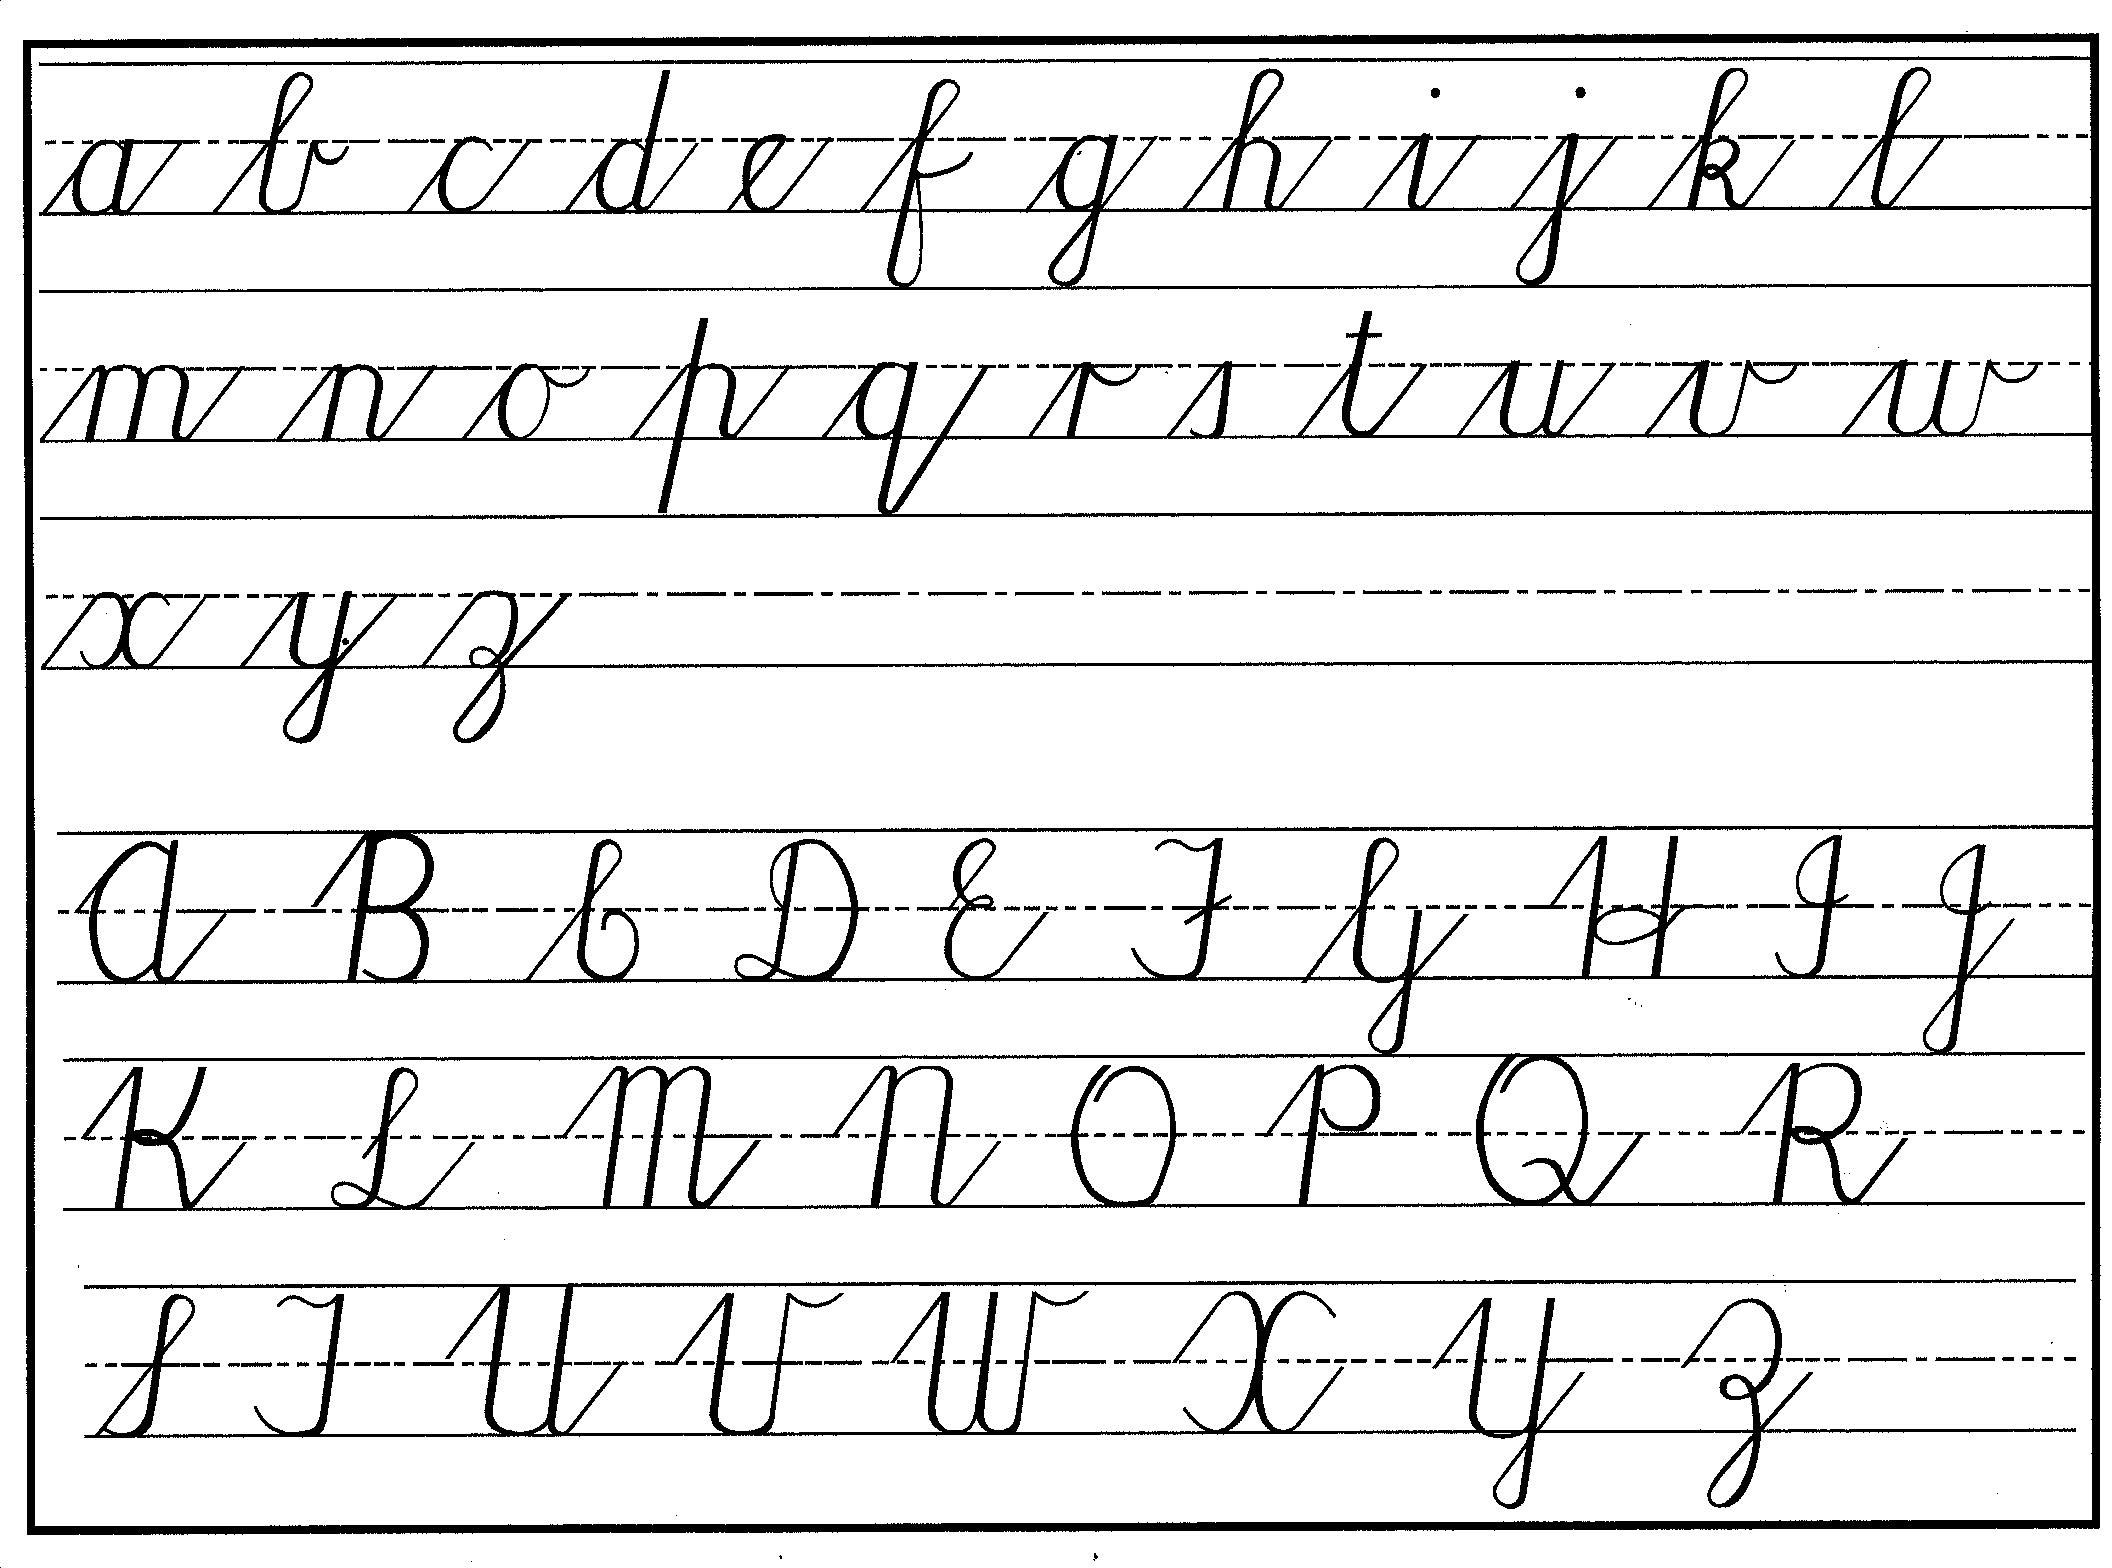 Worksheet Alphabet Handwriting 1000 images about handwriting on pinterest worksheets cursive alphabet and french